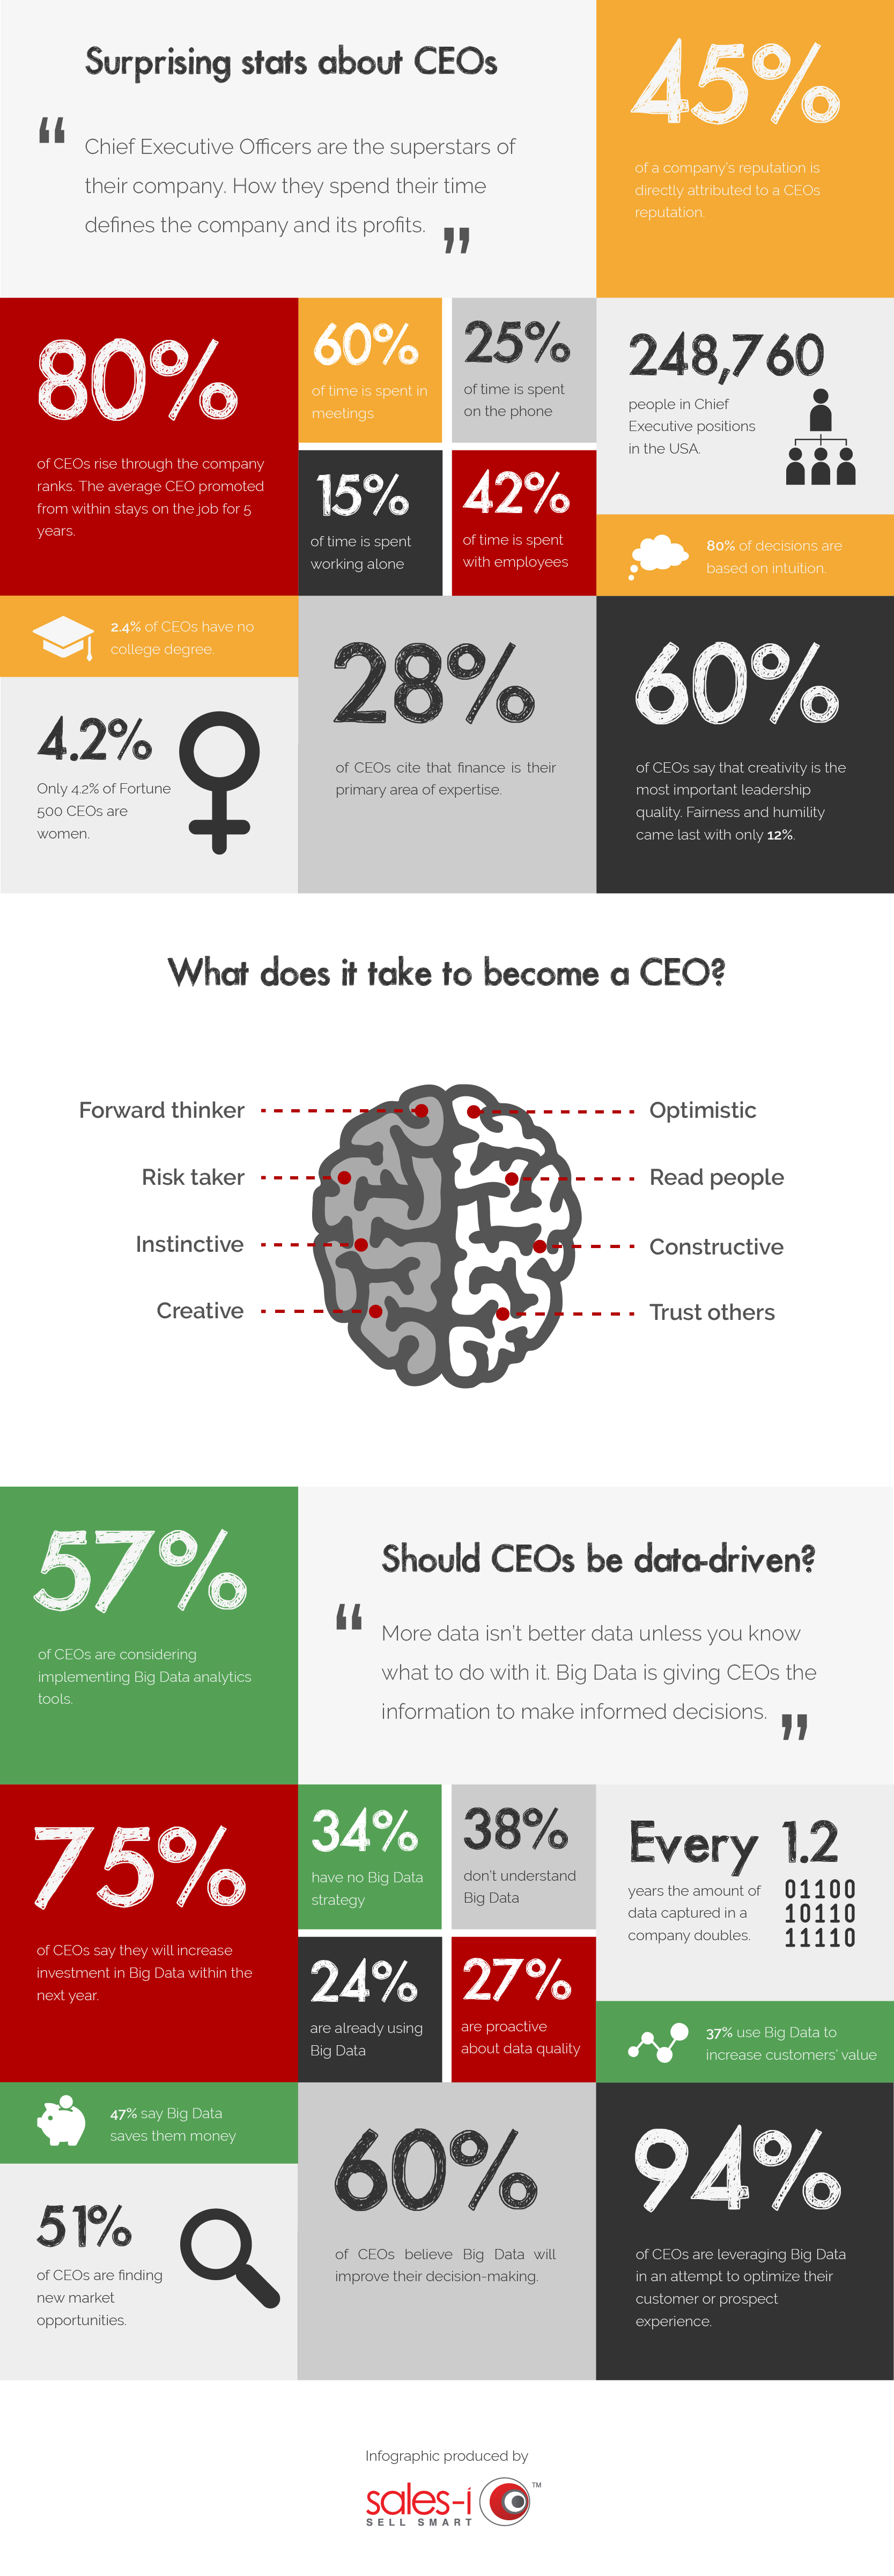 Surprising stats about CEOs